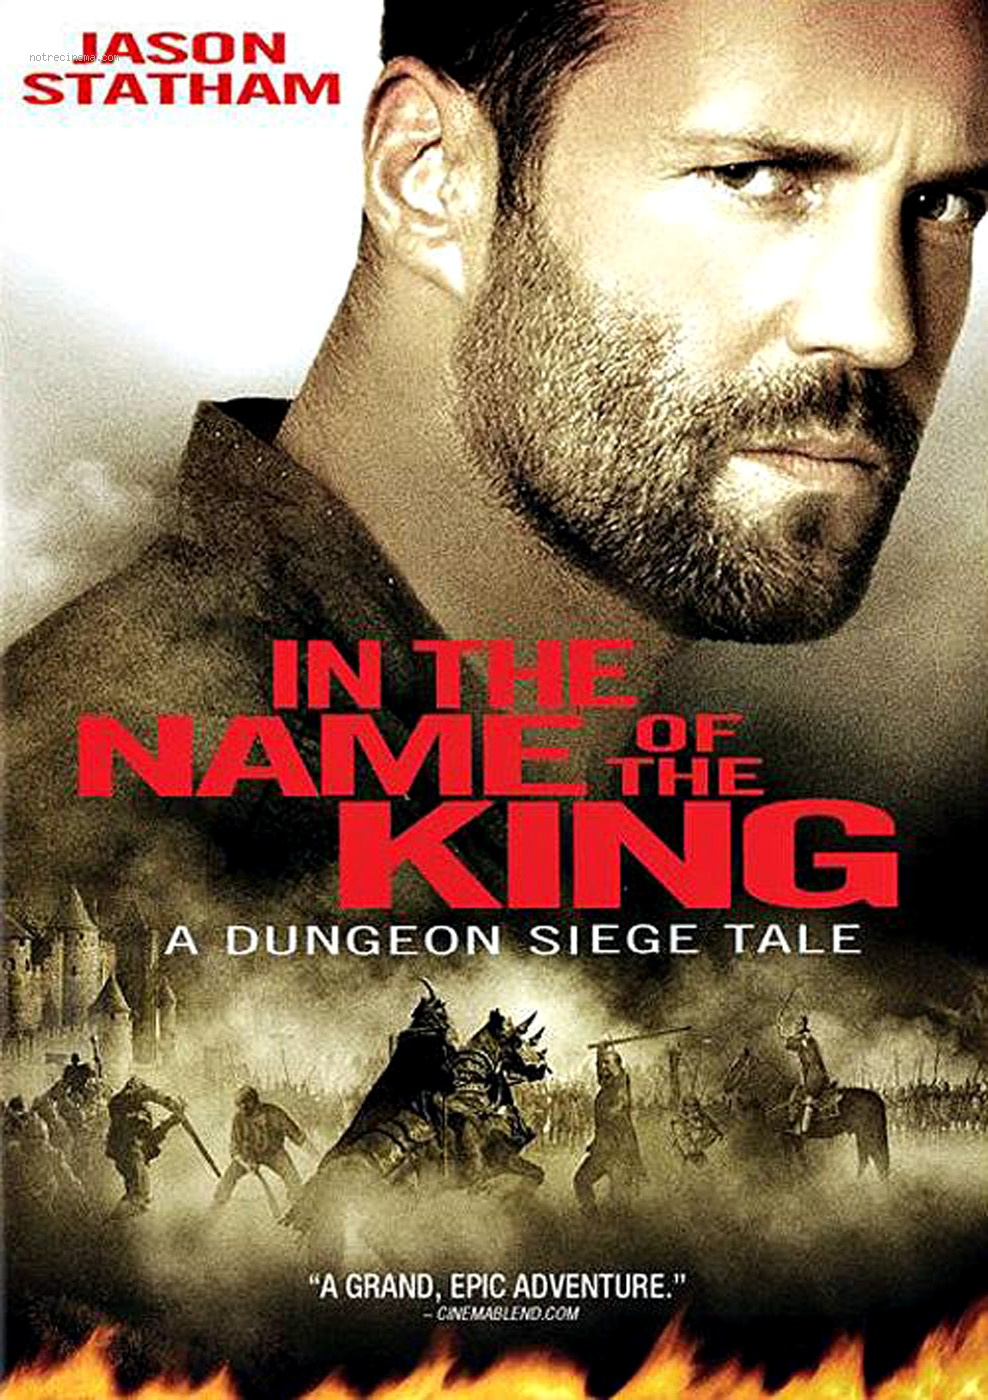 in the name of the king a dungeon siege tale 2007 in hindi